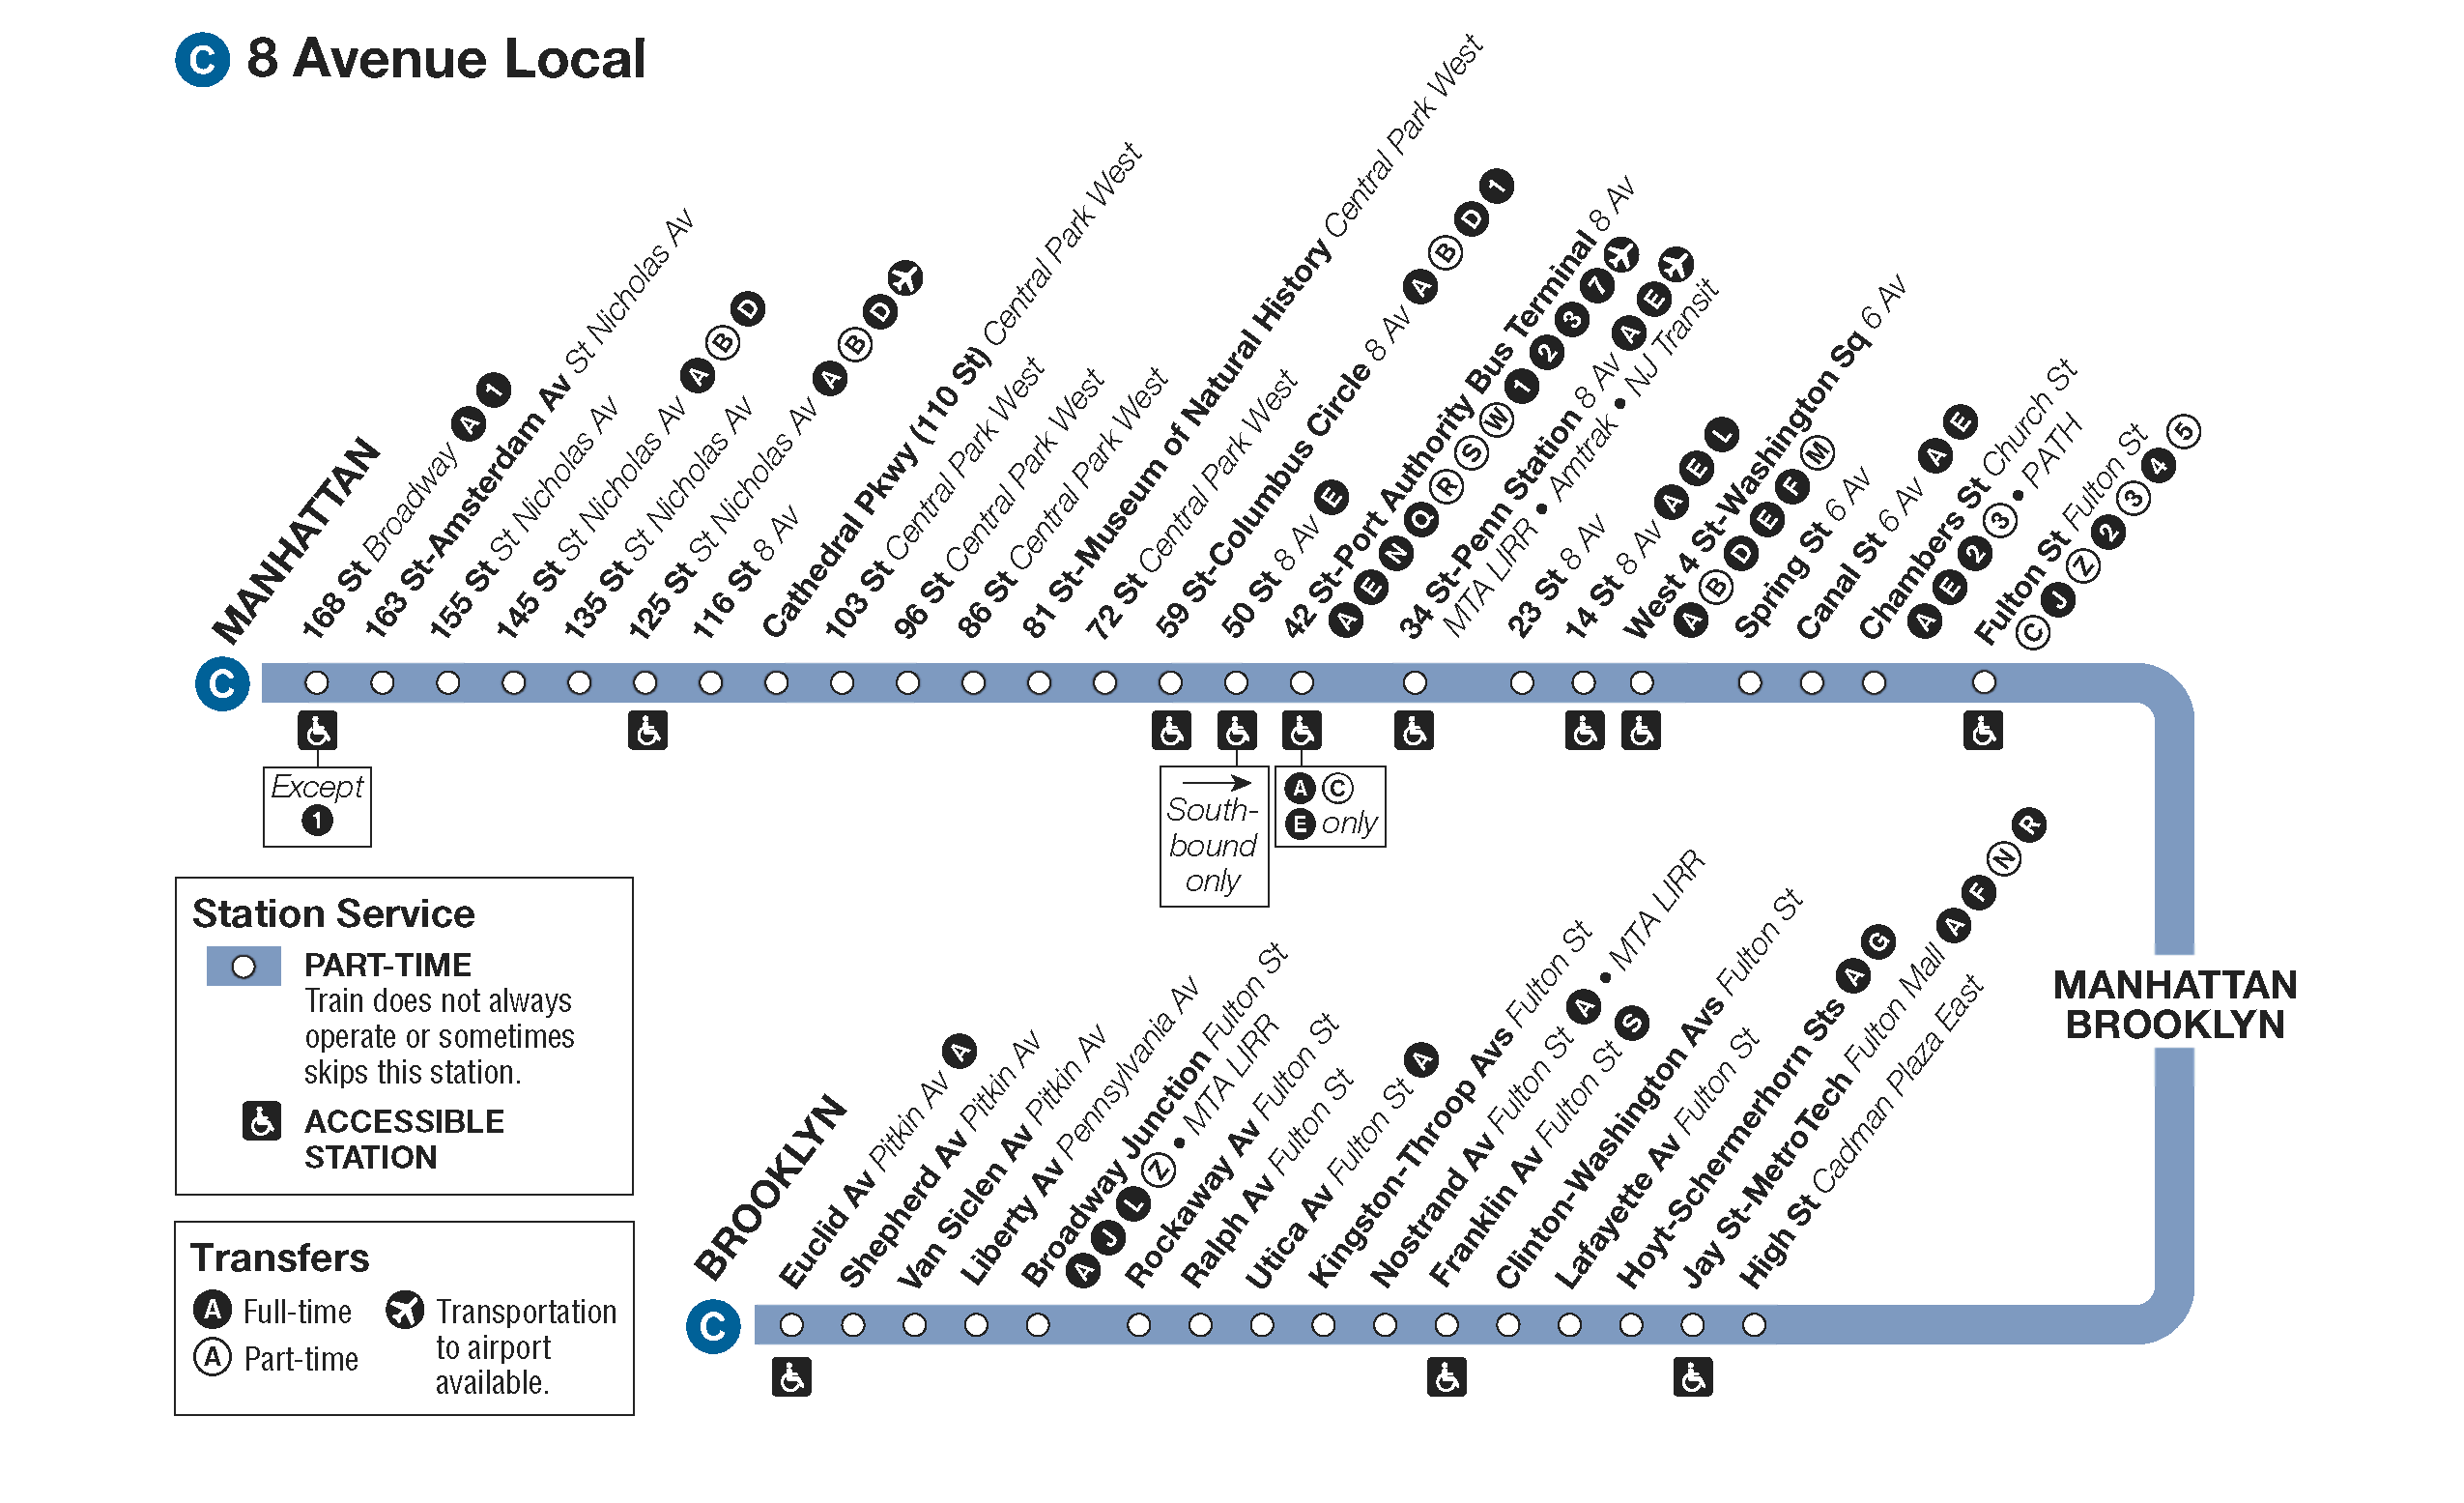 nyc-metro-route-c-8th-avenue-local-map